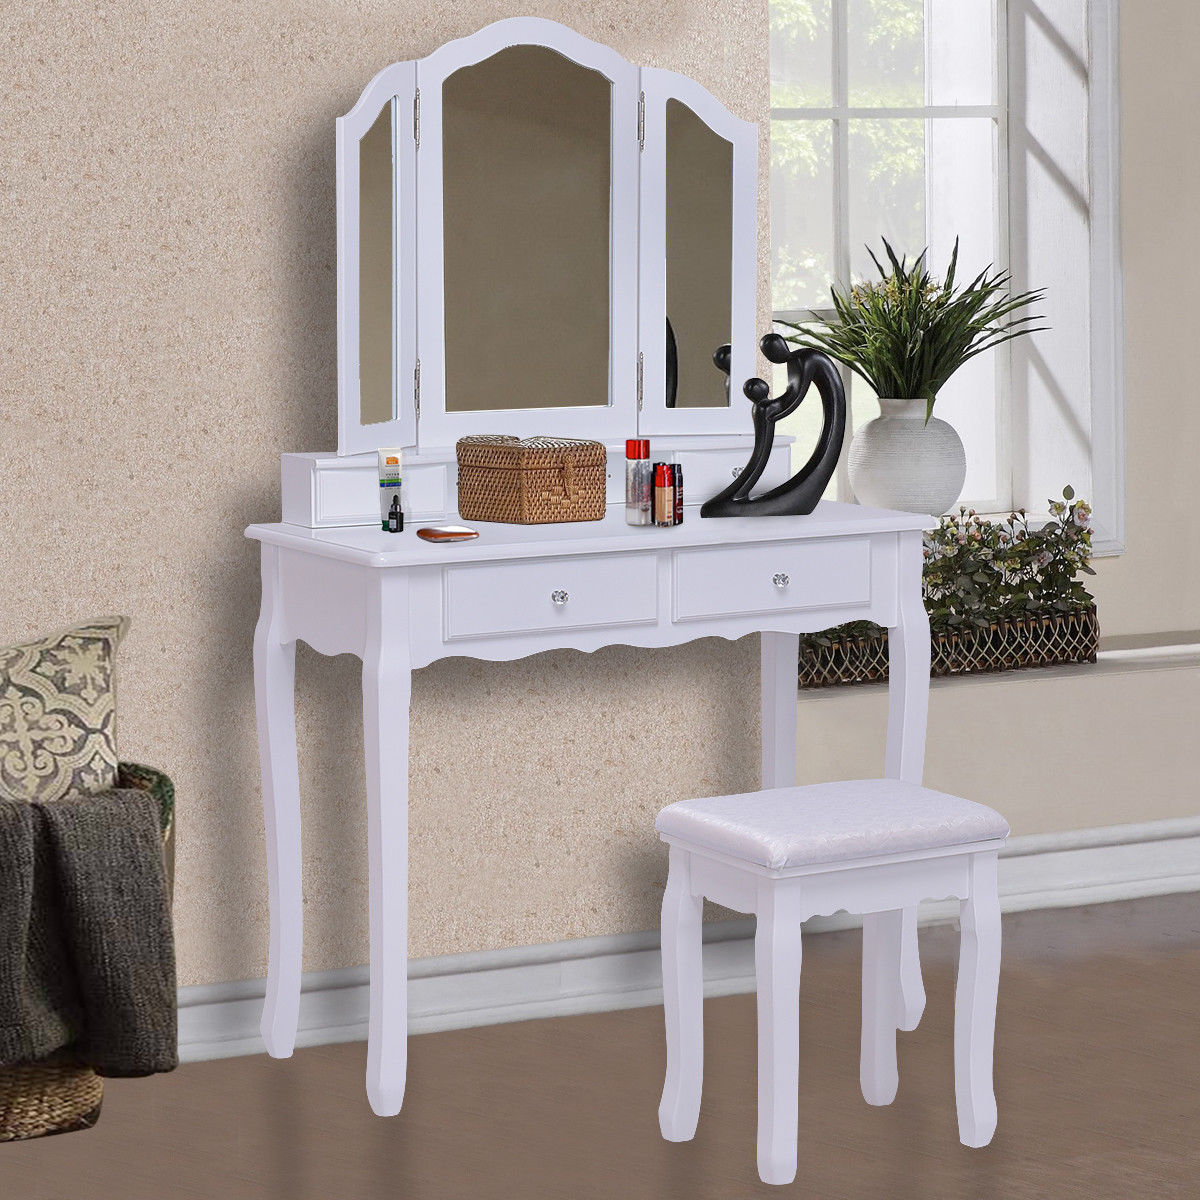 Giantex White Tri Folding Mirror Vanity Makeup Table Stool Set Home Desk With 4 Drawers Bedroom Modern Dresser HW55563WH dressing table makeup desk dresser 1 mirror 4 drawers european bedroom furniture make up mesa bedroom penteadeira with stool